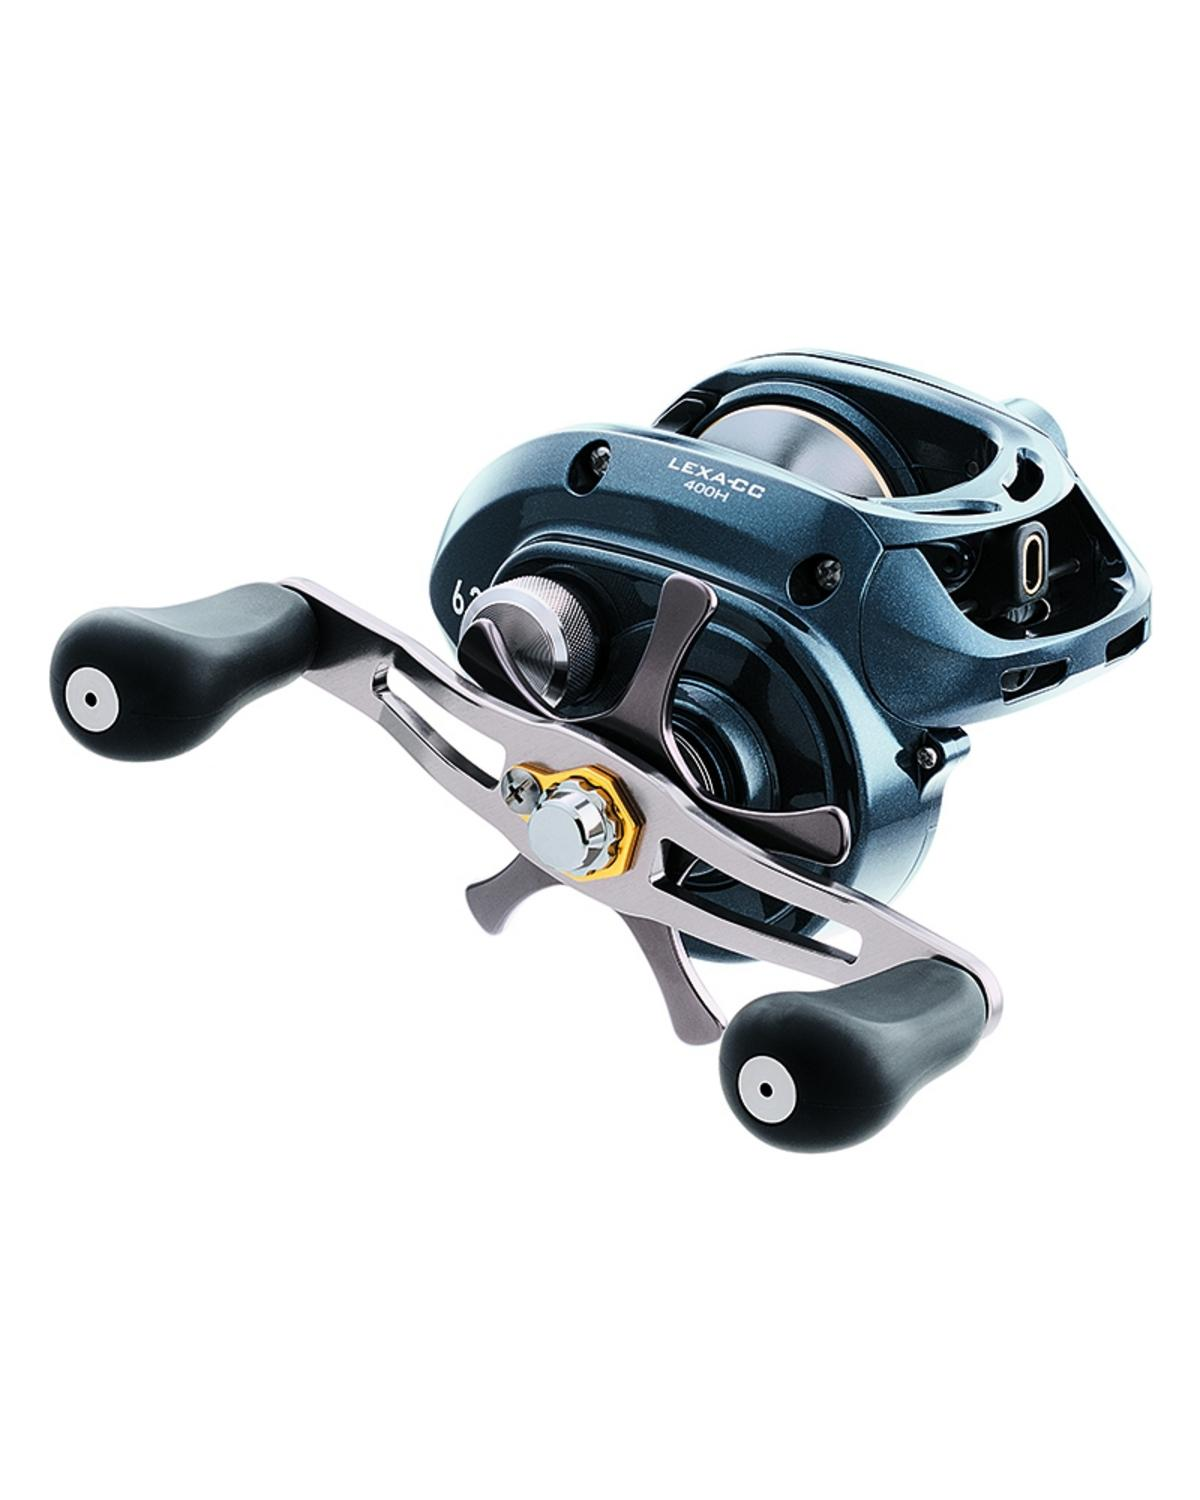 EX DISPLAY DAIWA LEXA CC400H RHW BAITCASTER FISHING REEL LEXA-CC400H